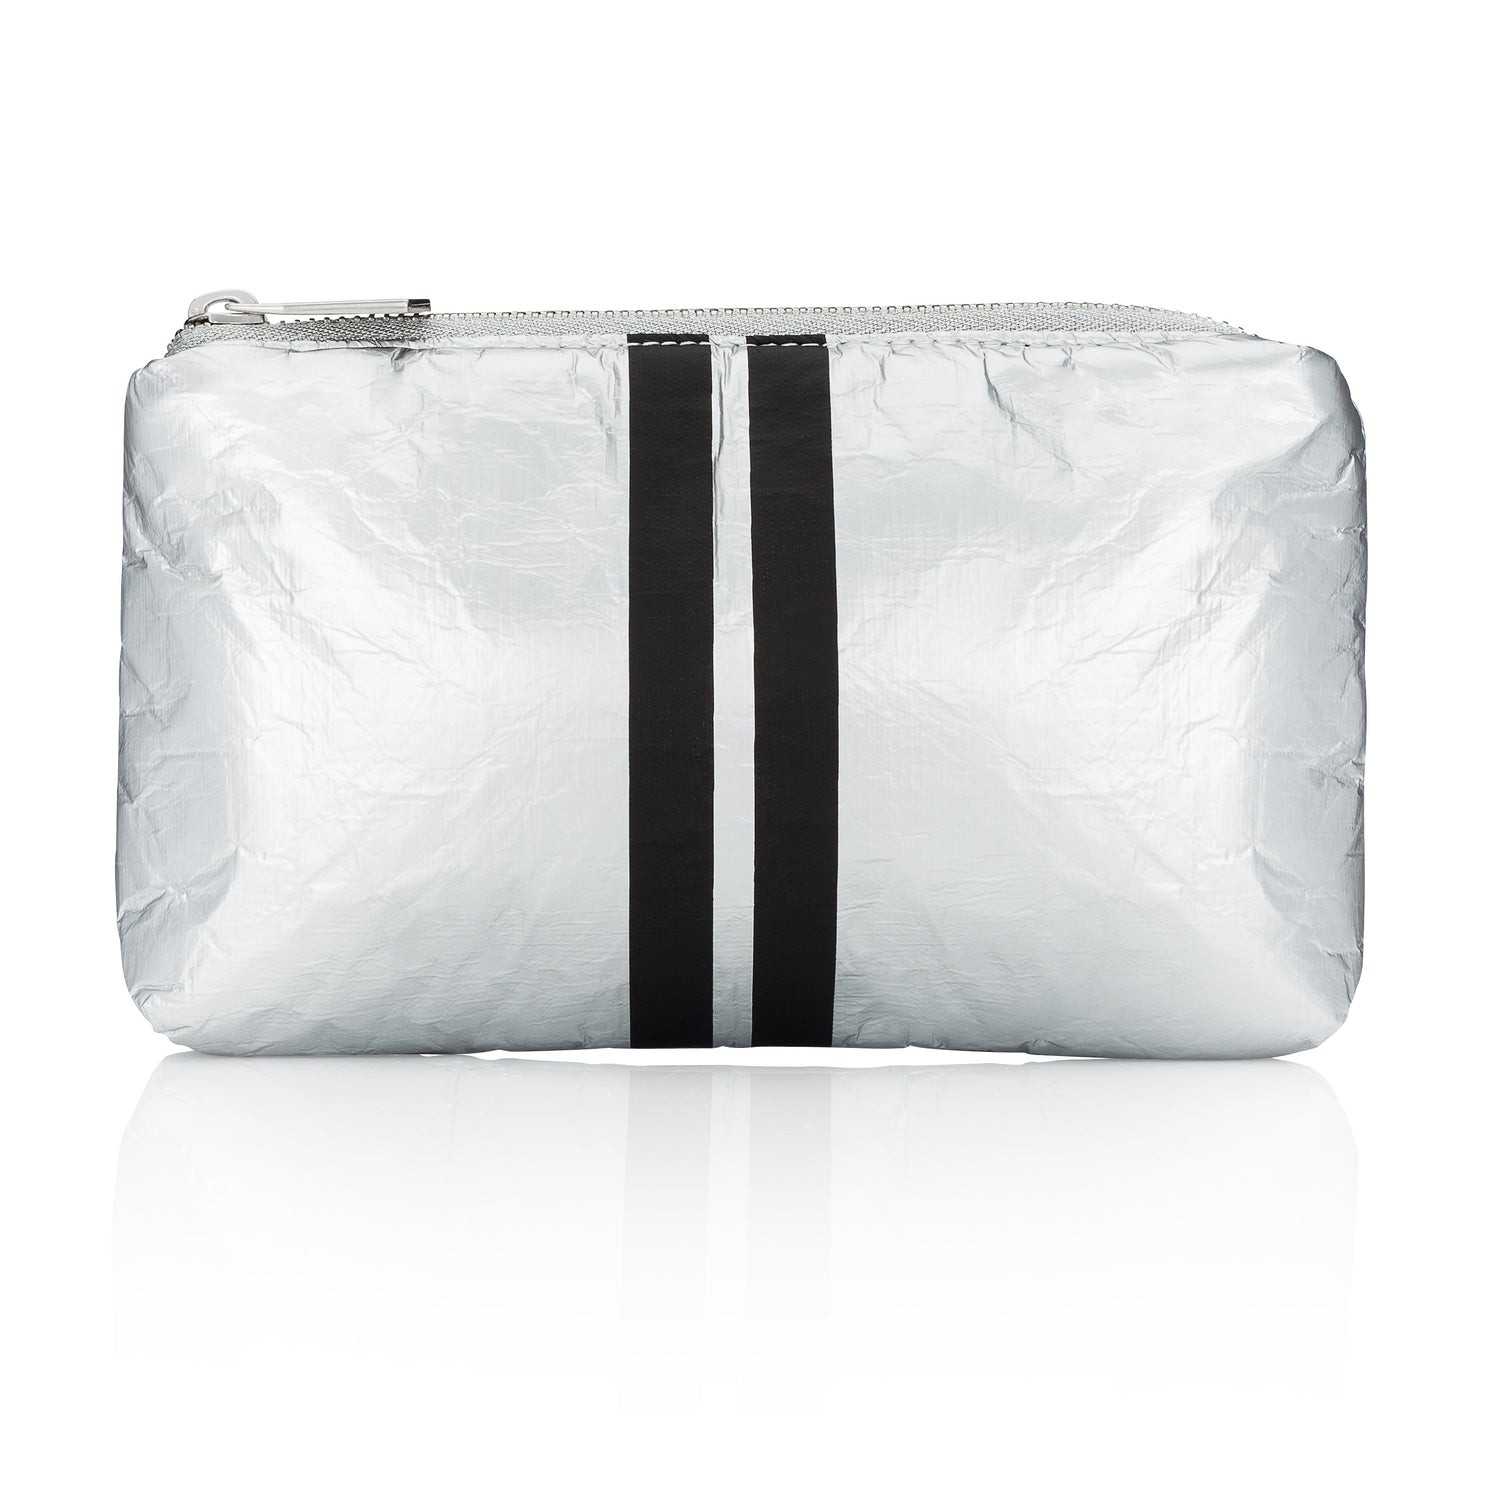 Mini Padded Pack - Metallic Silver Collection with Black Lines